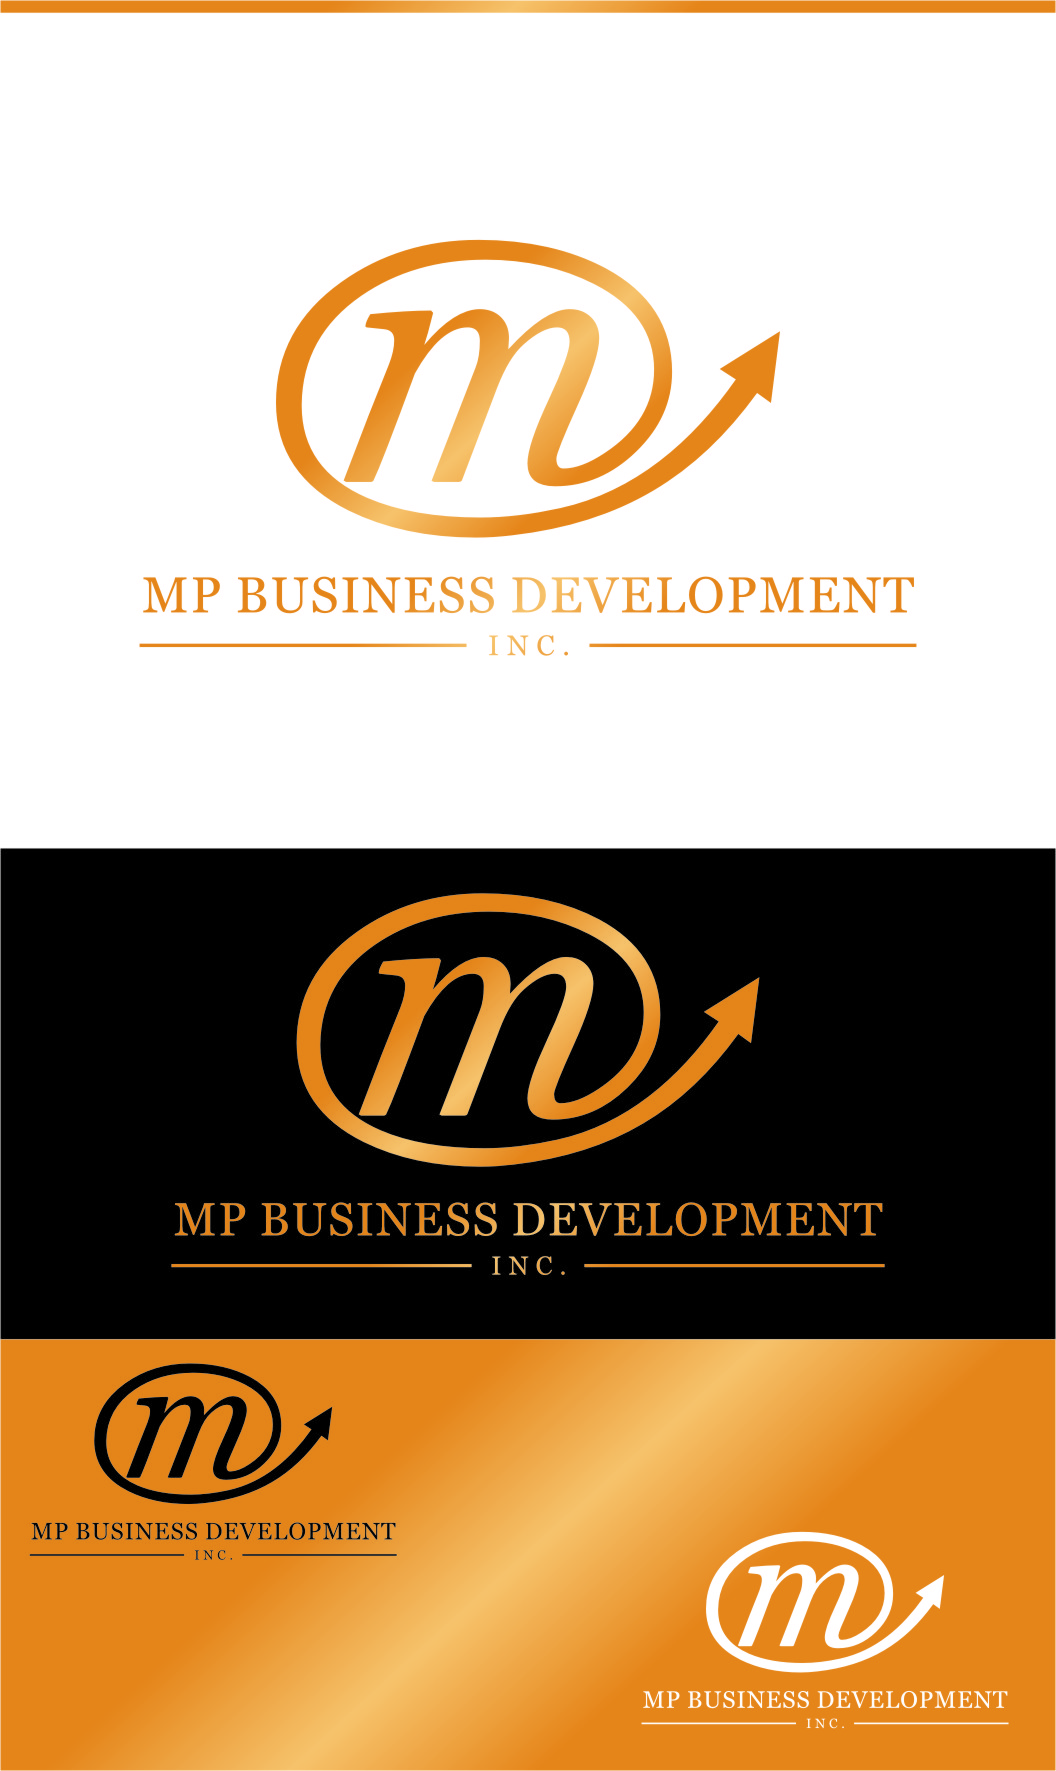 Logo Design by Ngepet_art - Entry No. 238 in the Logo Design Contest MP Business Development Inc. Logo Design.